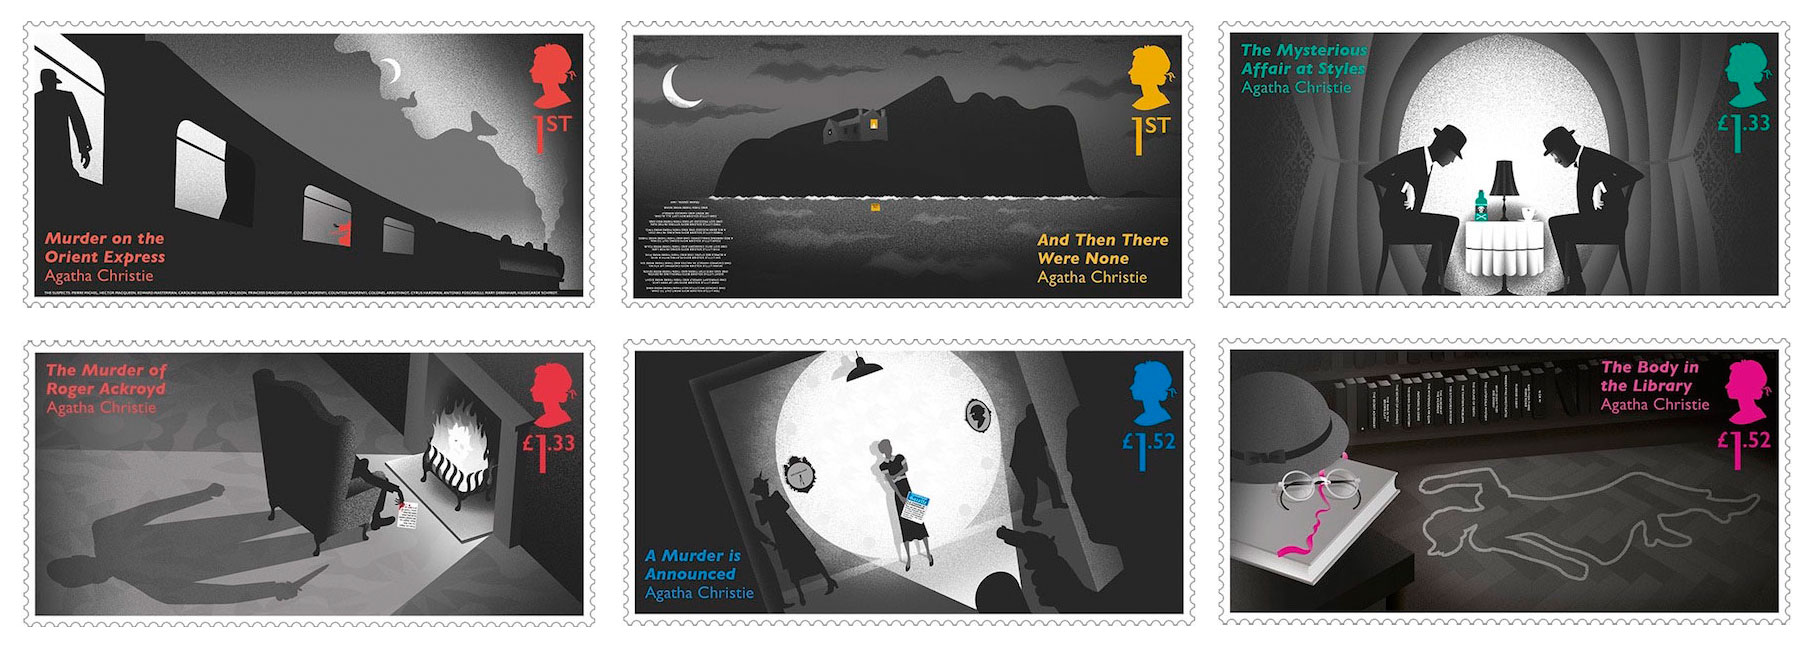 Images of 6 stamps from the new issue